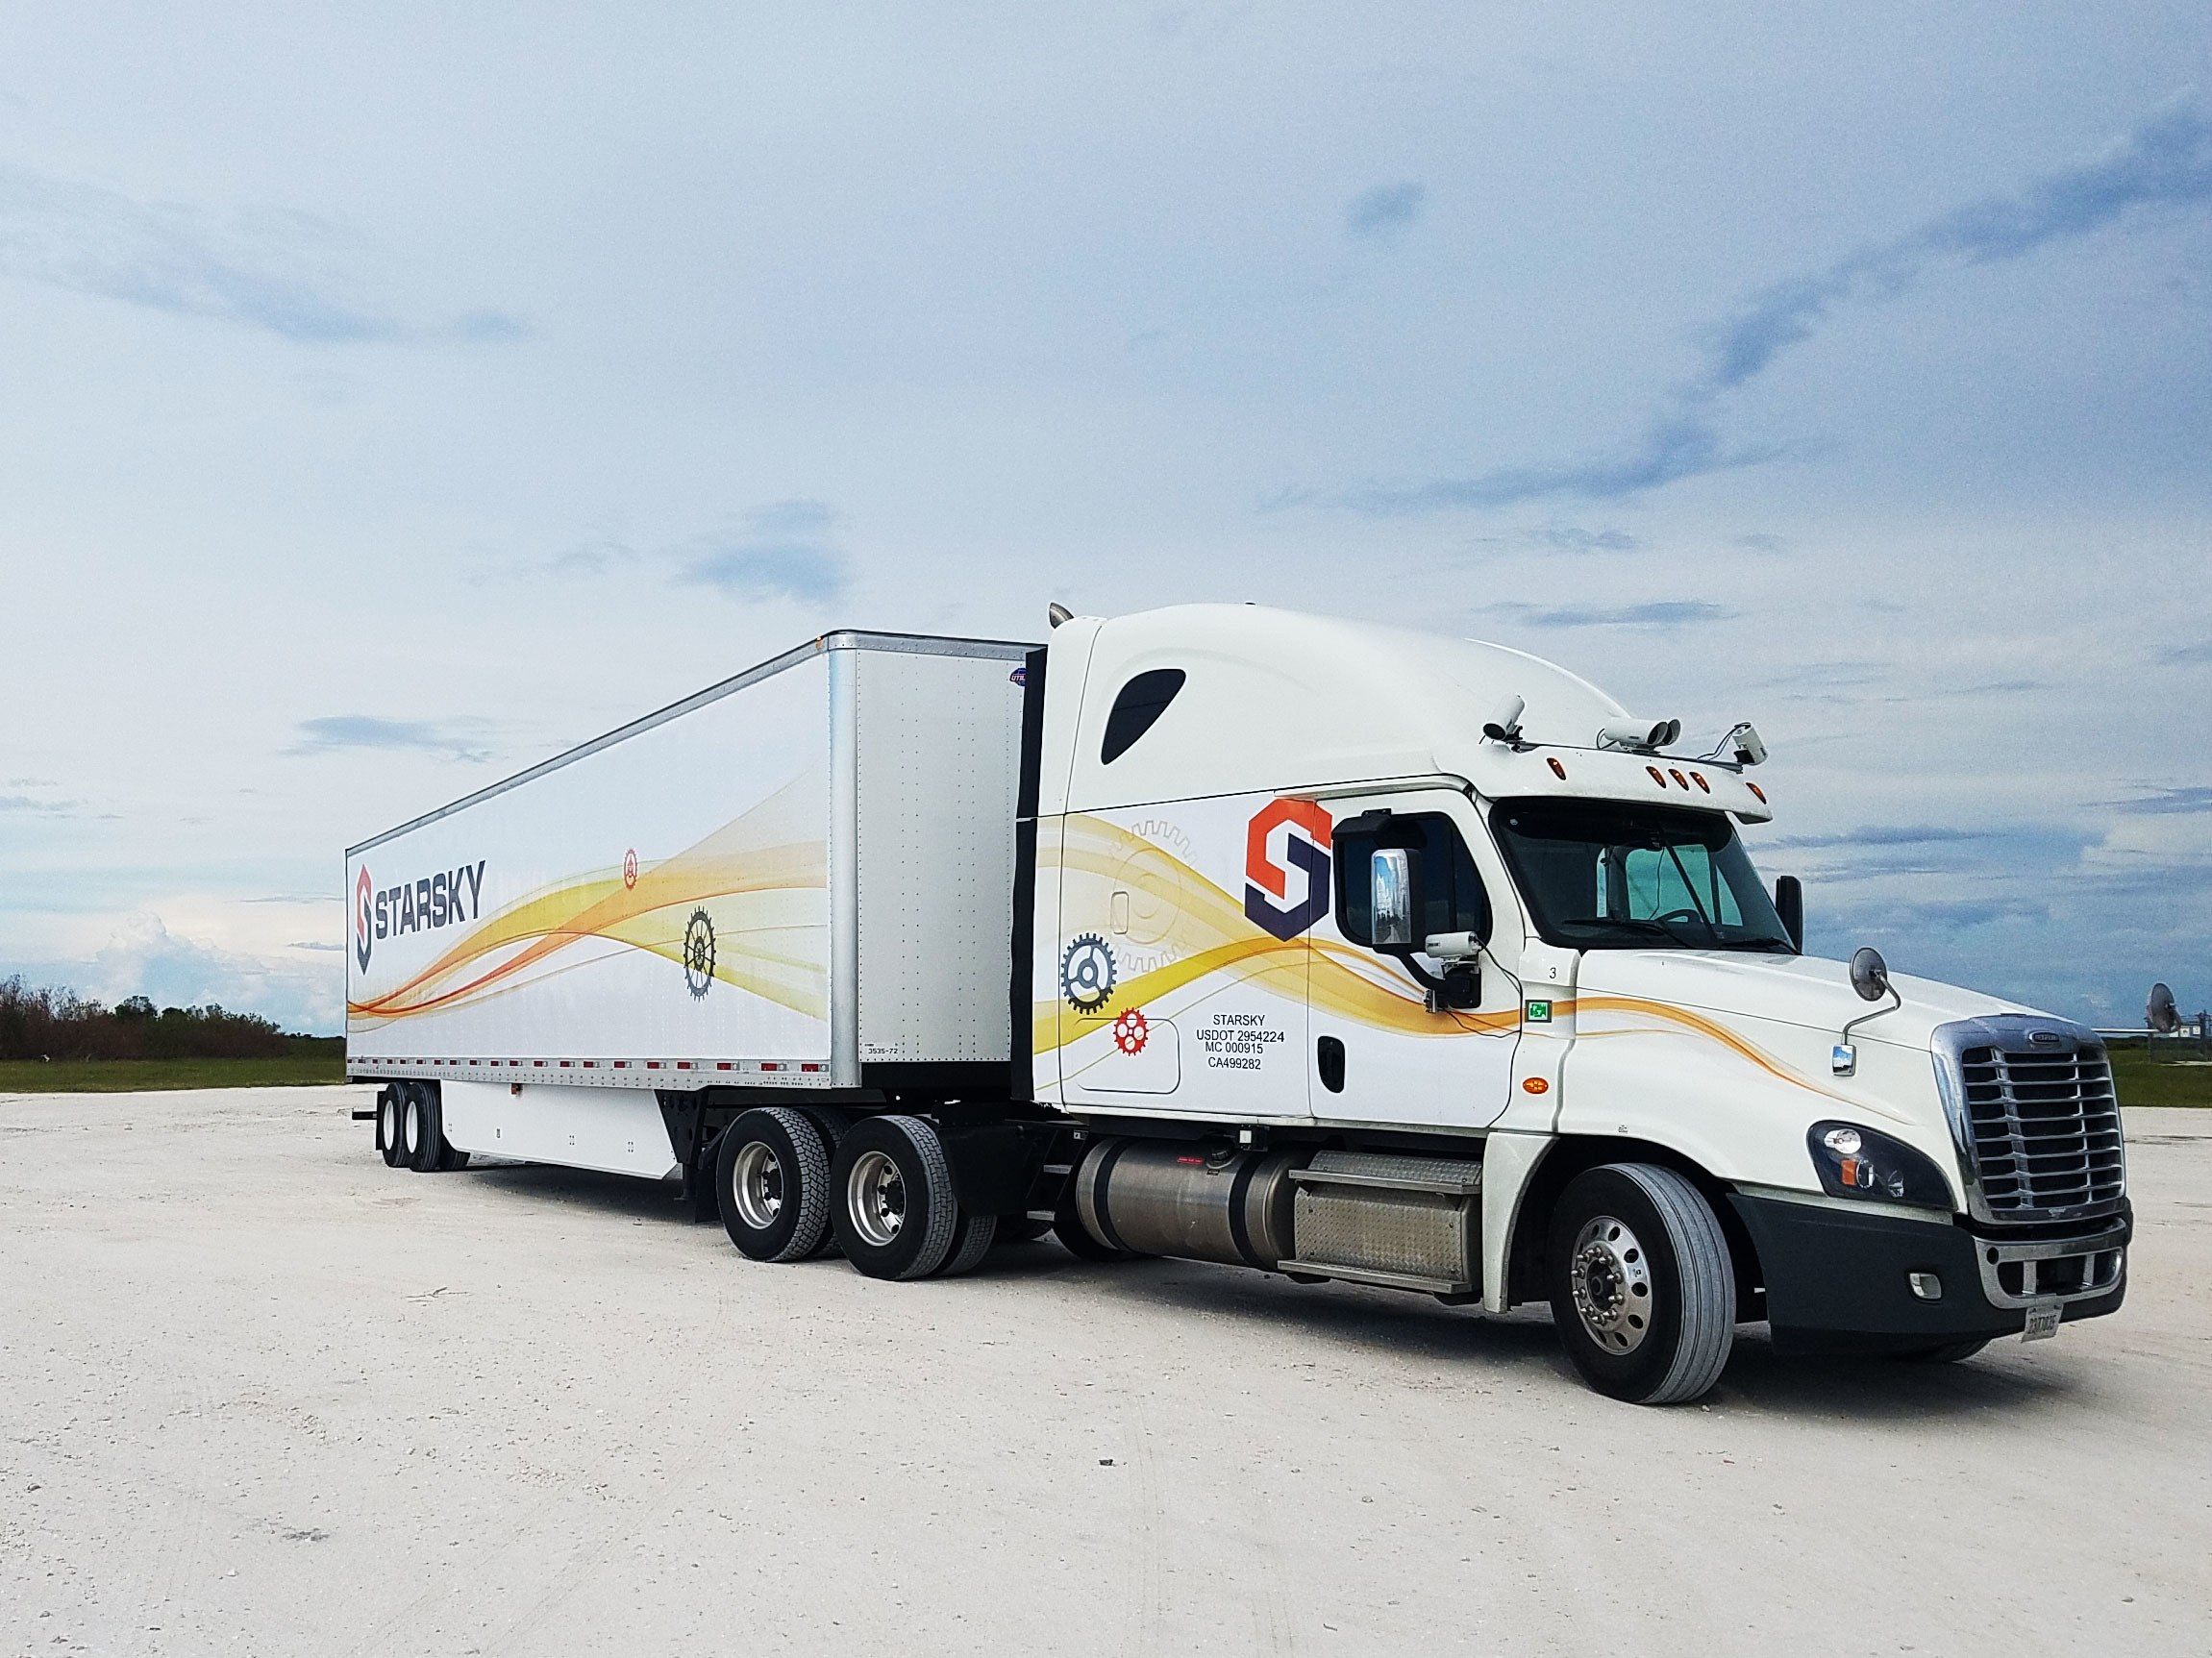 Starsky Robotics' Truck Takes Its First Human-Free Trip | WIRED